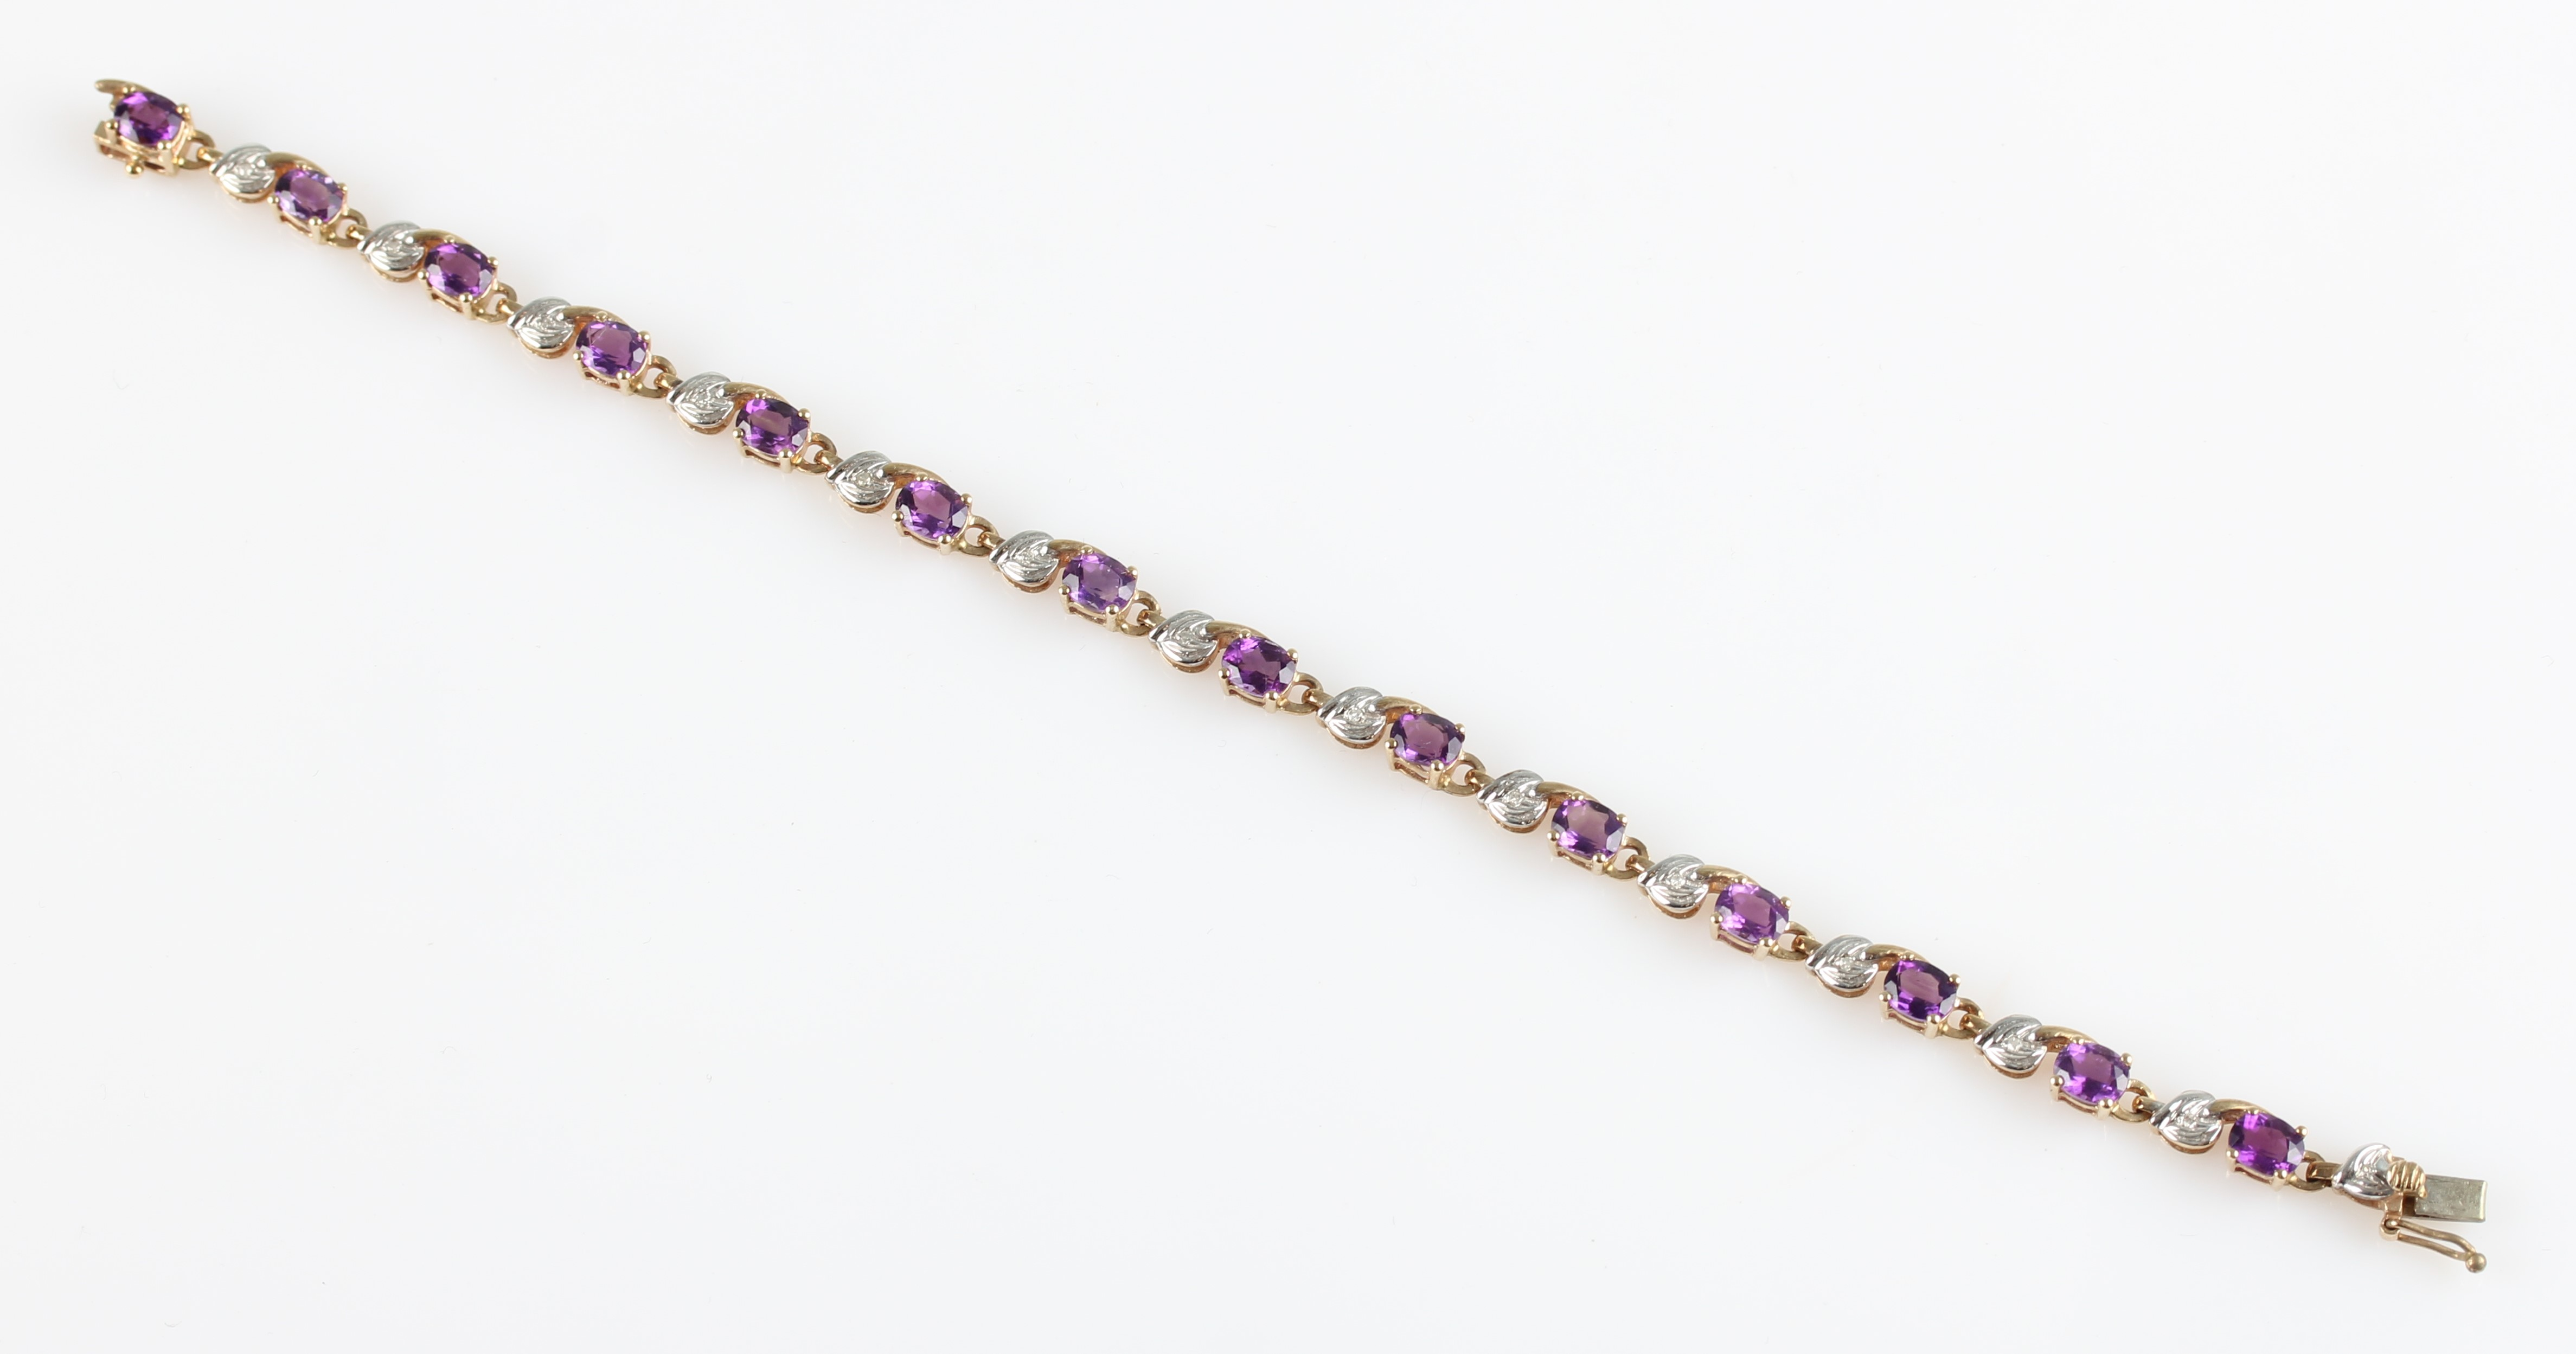 Lot 53 - A hallmarked 9ct yellow gold amethyst and diamond bracelet, set with fourteen oval cut amethysts and